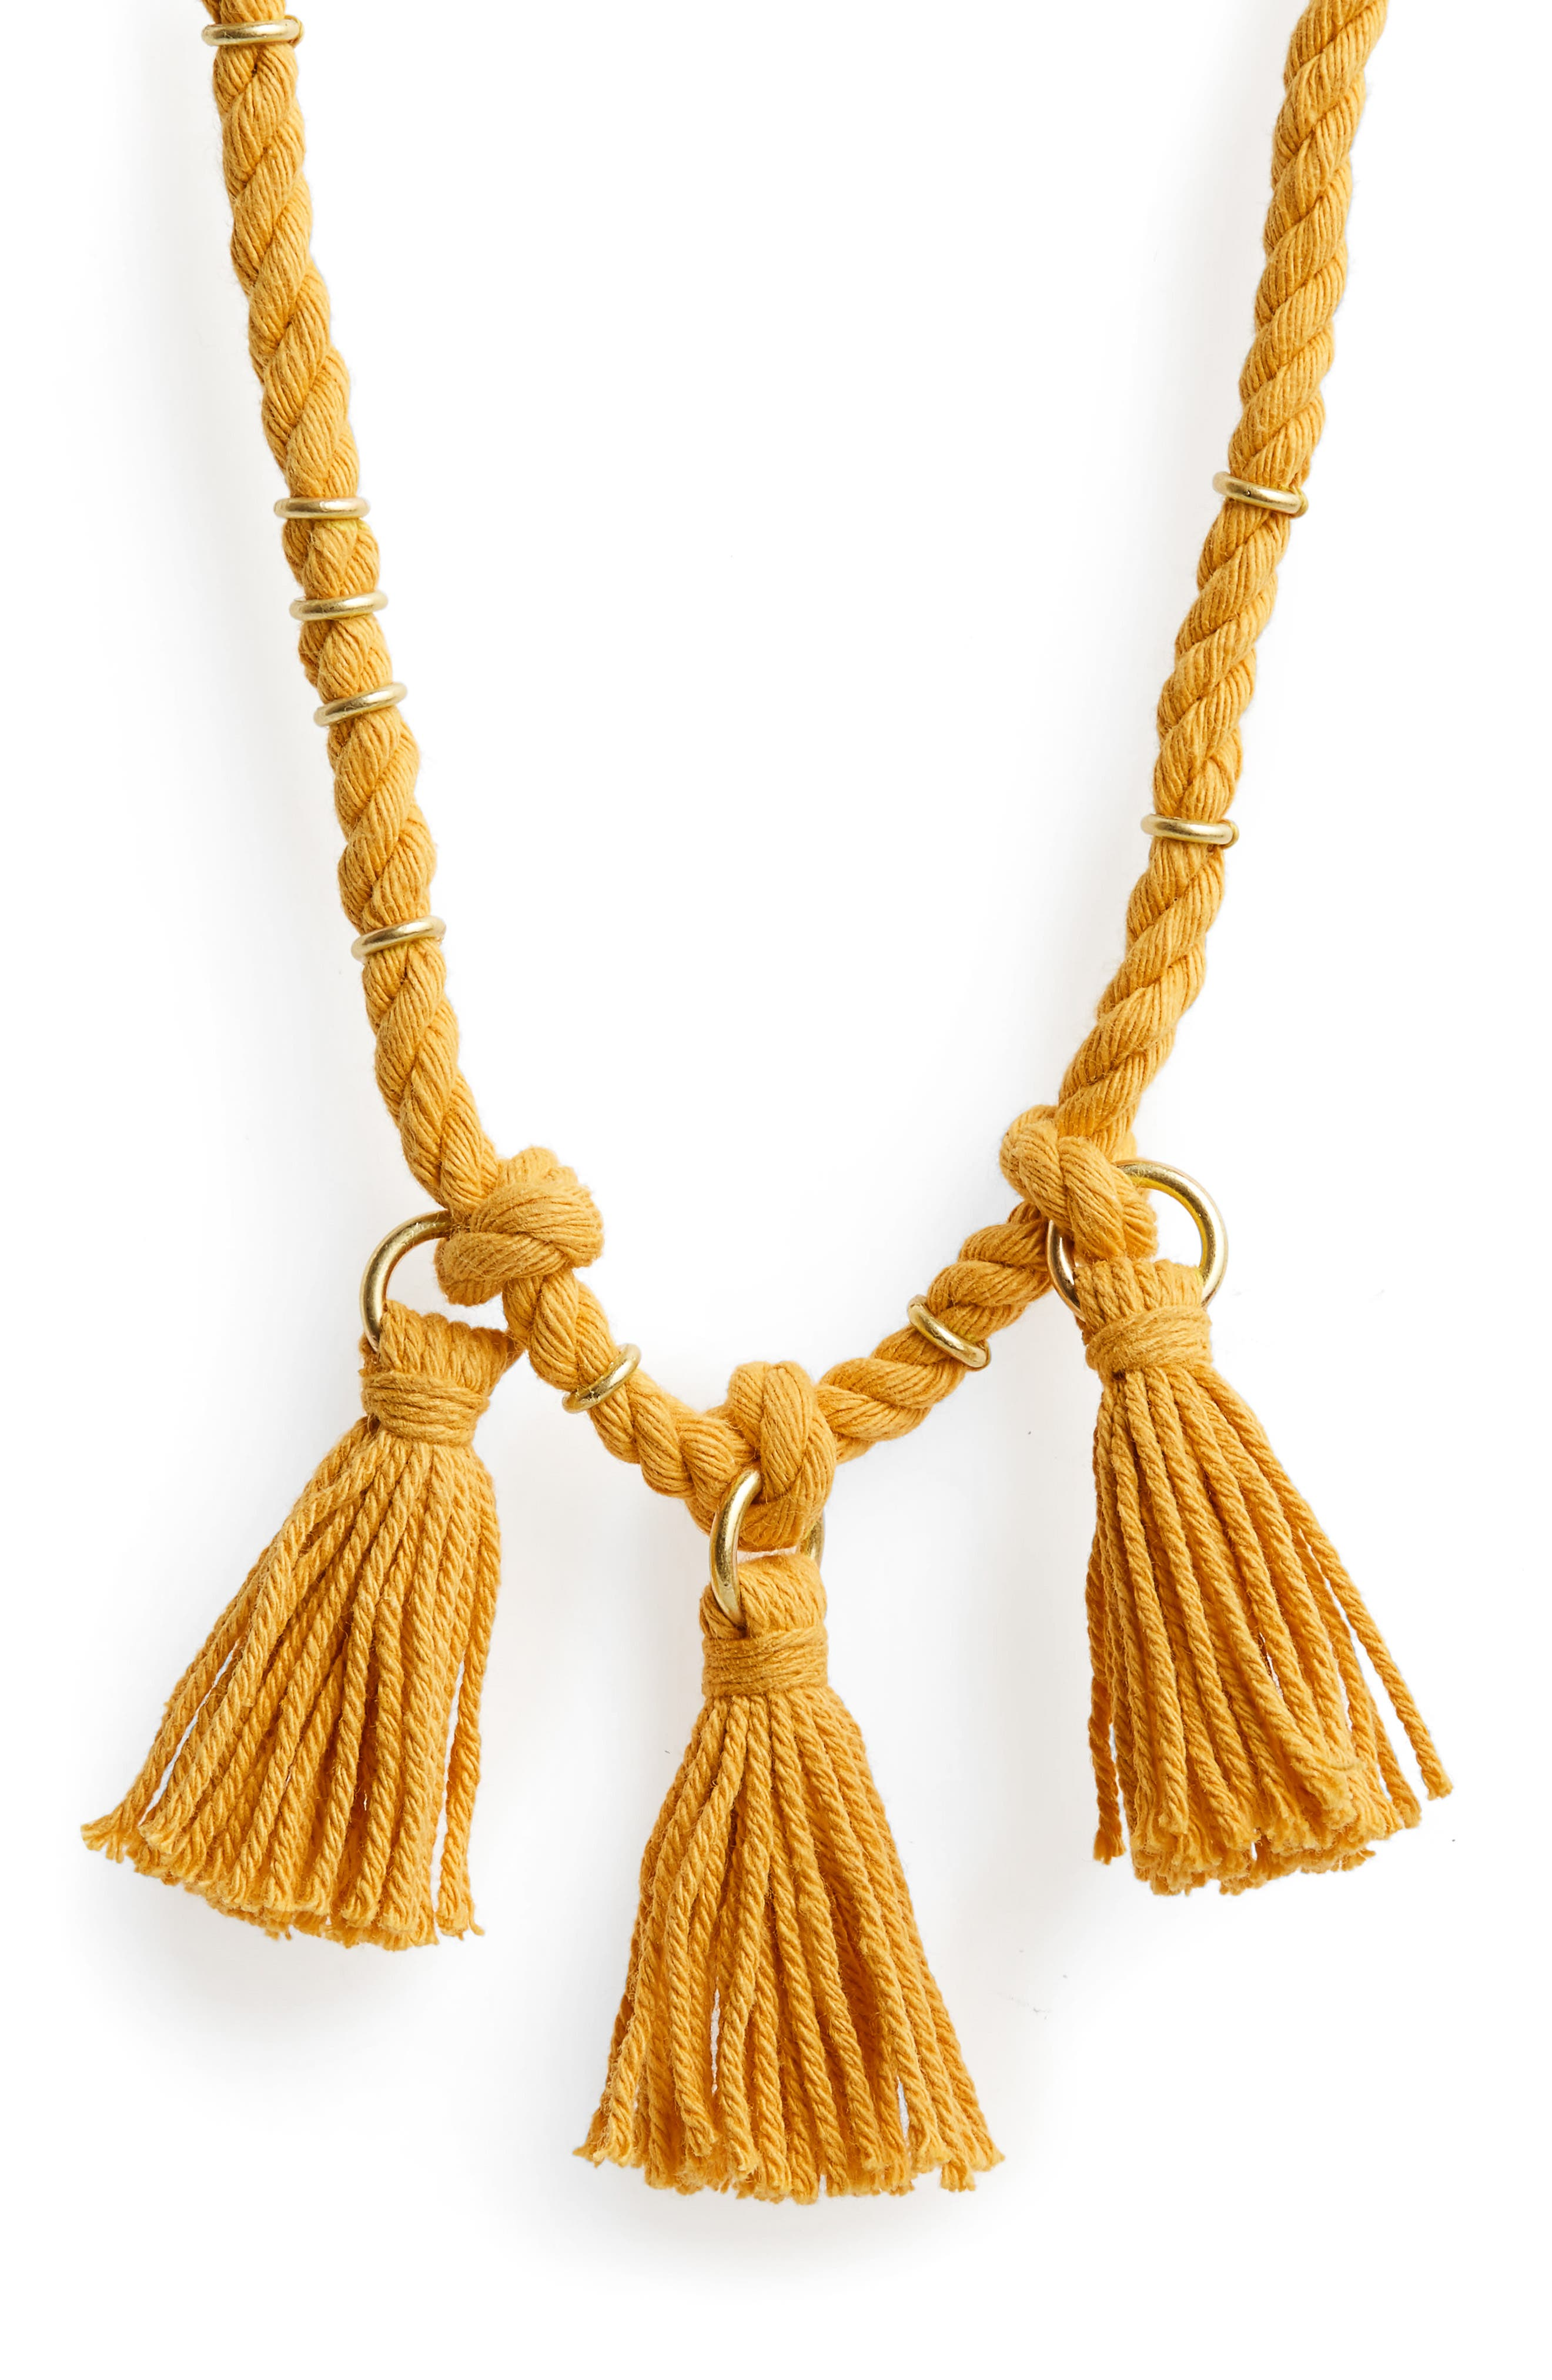 Rope & Tassel Necklace,                             Main thumbnail 1, color,                             NECTAR GOLD